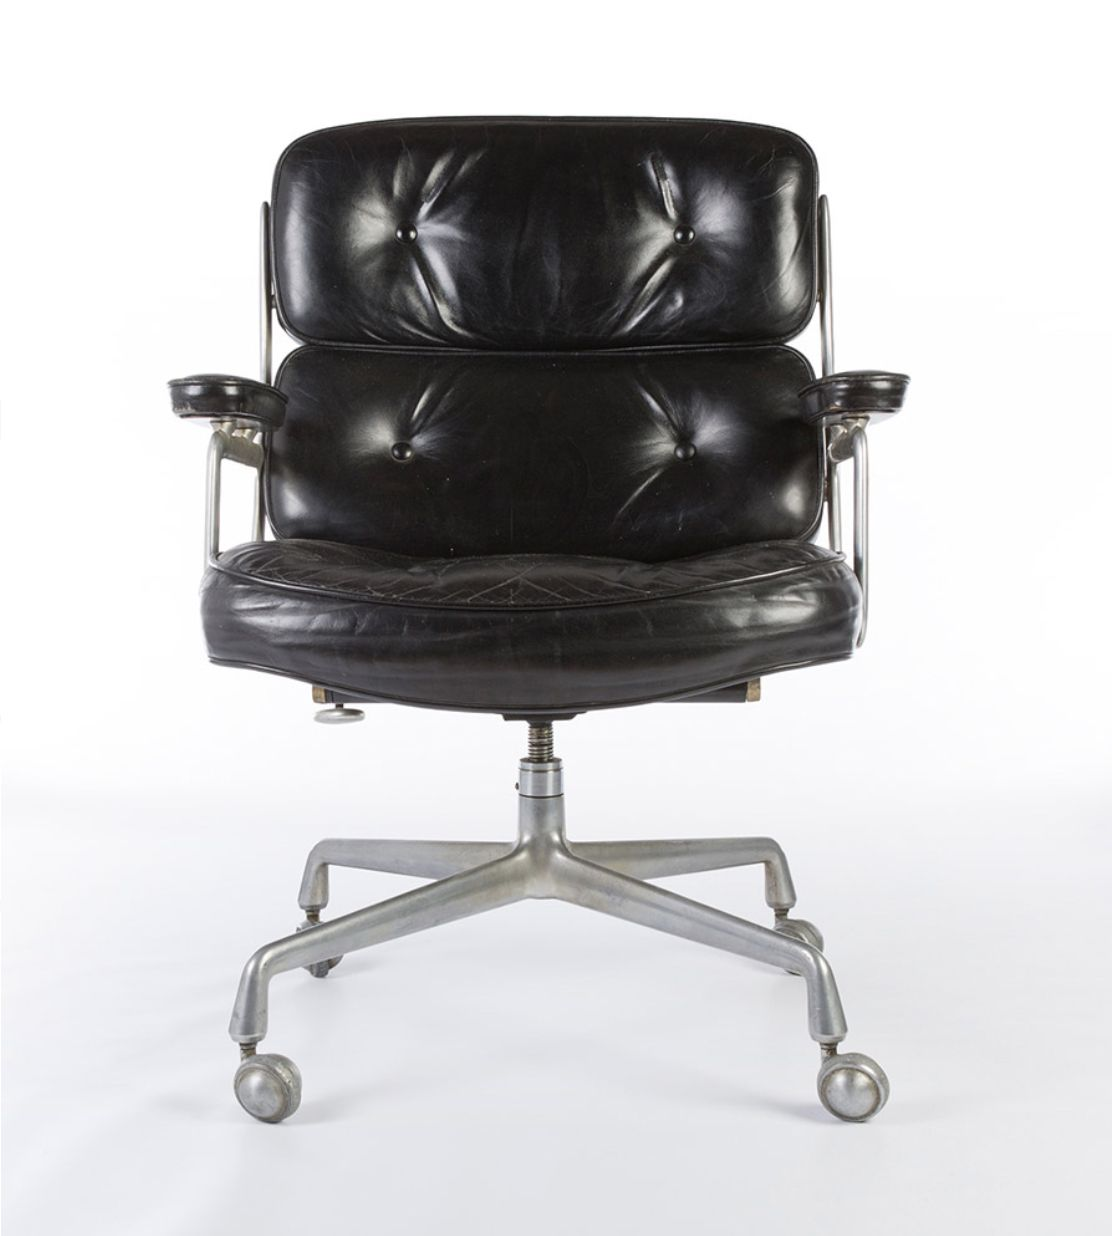 Eames Time Life Desk Chair Office Chair Design Office Chair Chair